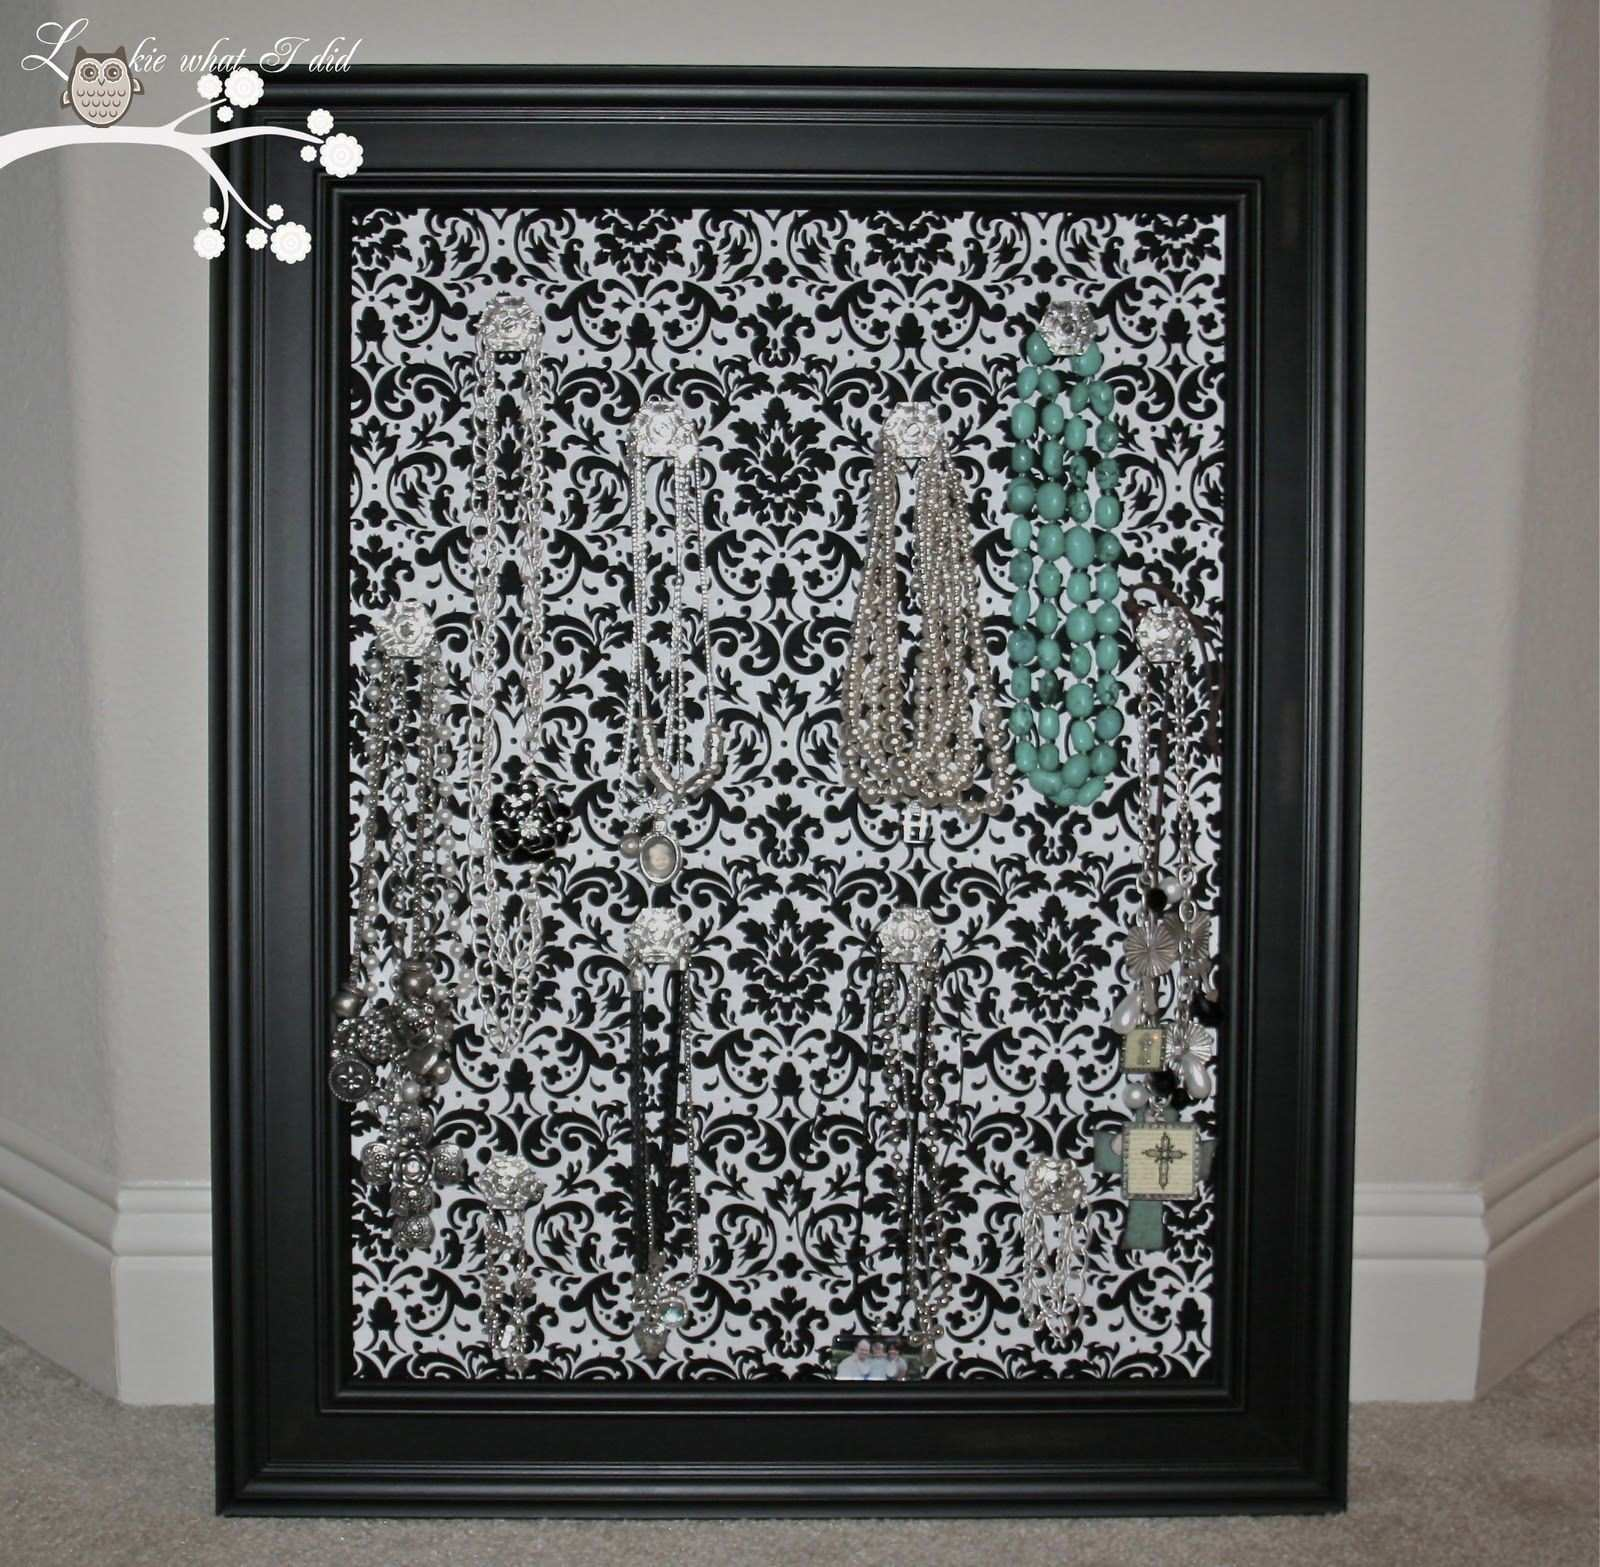 Lookie What I Did Black and White Damask Jewelry Frame